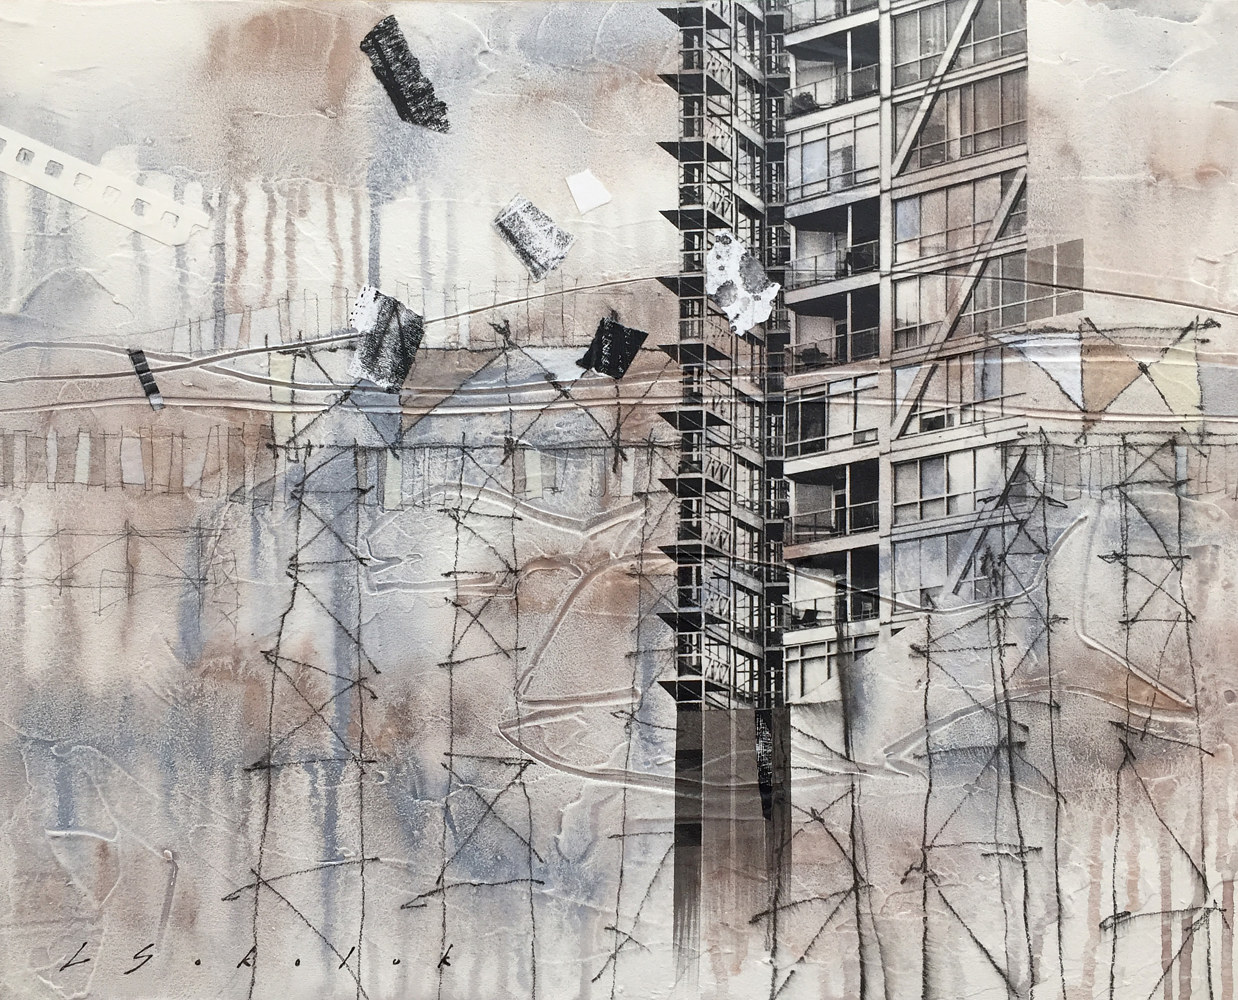 Mixed-media artwork Forces of Progress And Decay by Lori Sokoluk